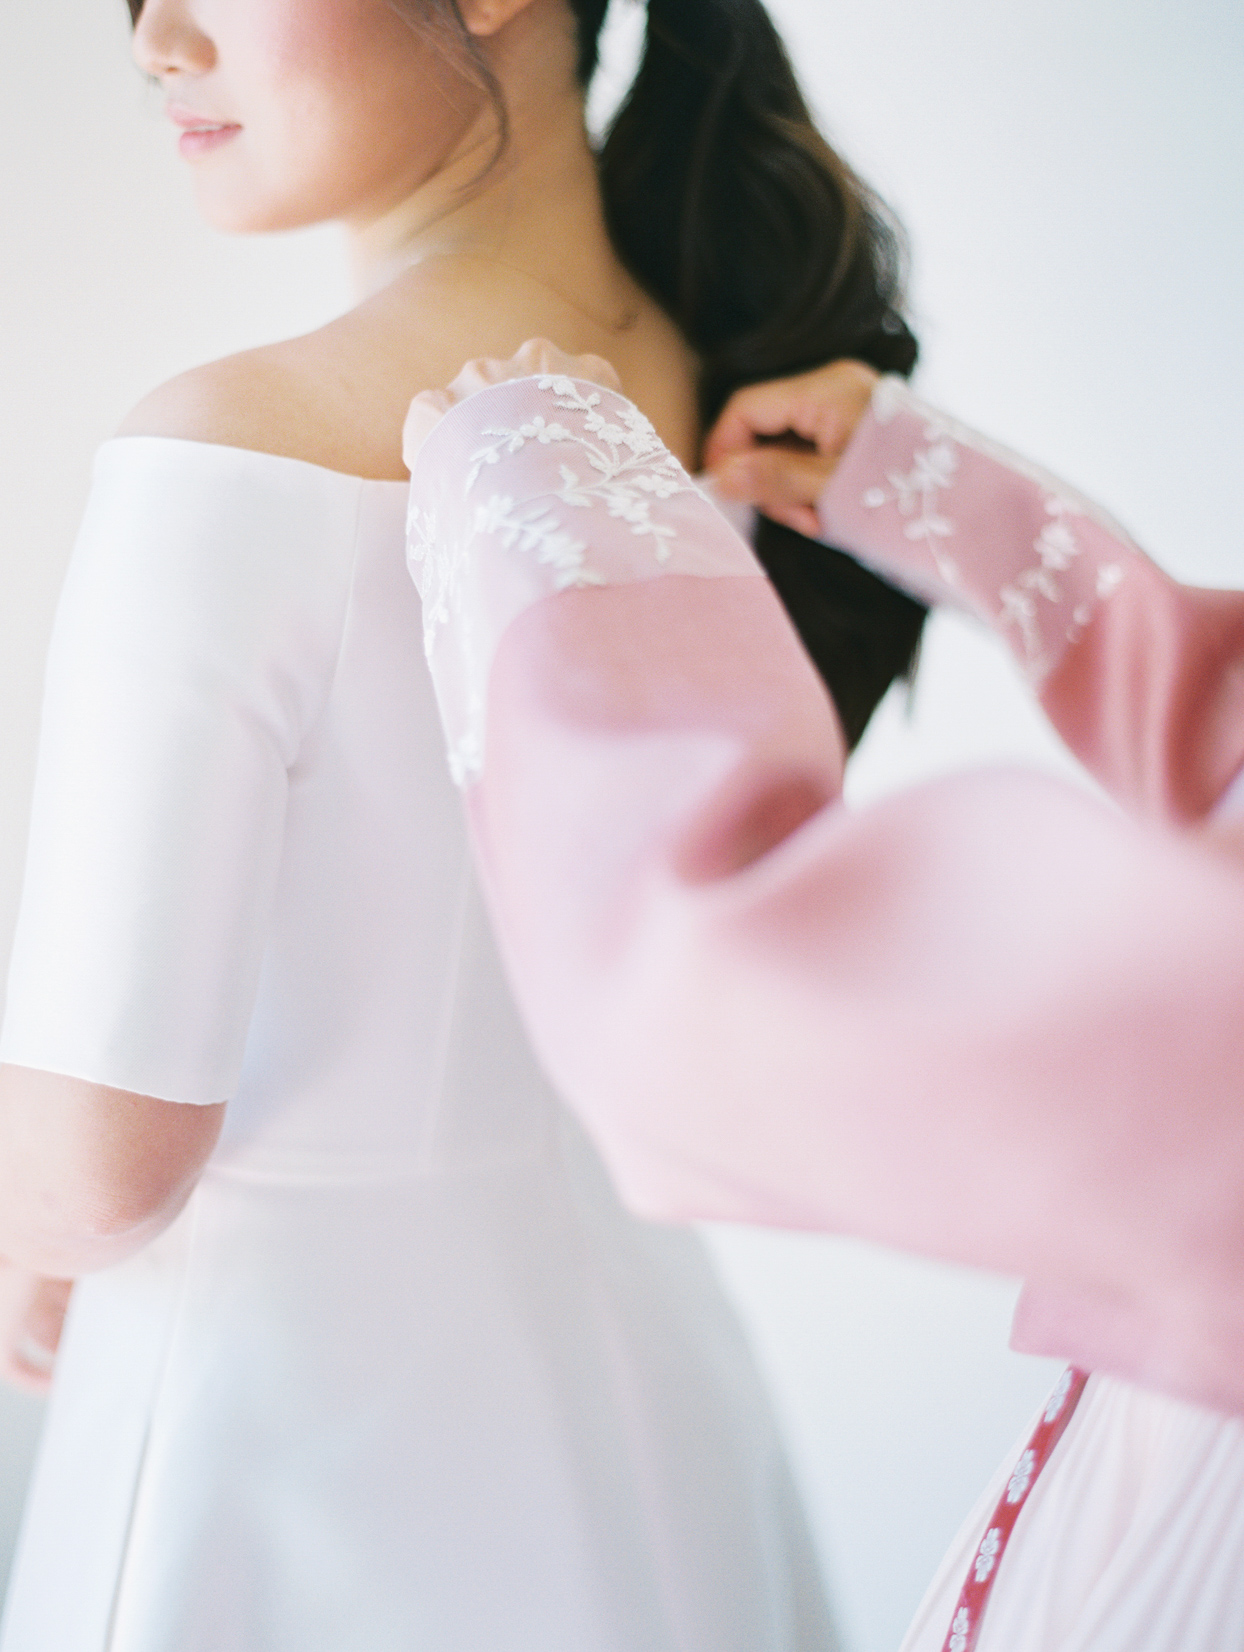 woman helping bride with wedding dress